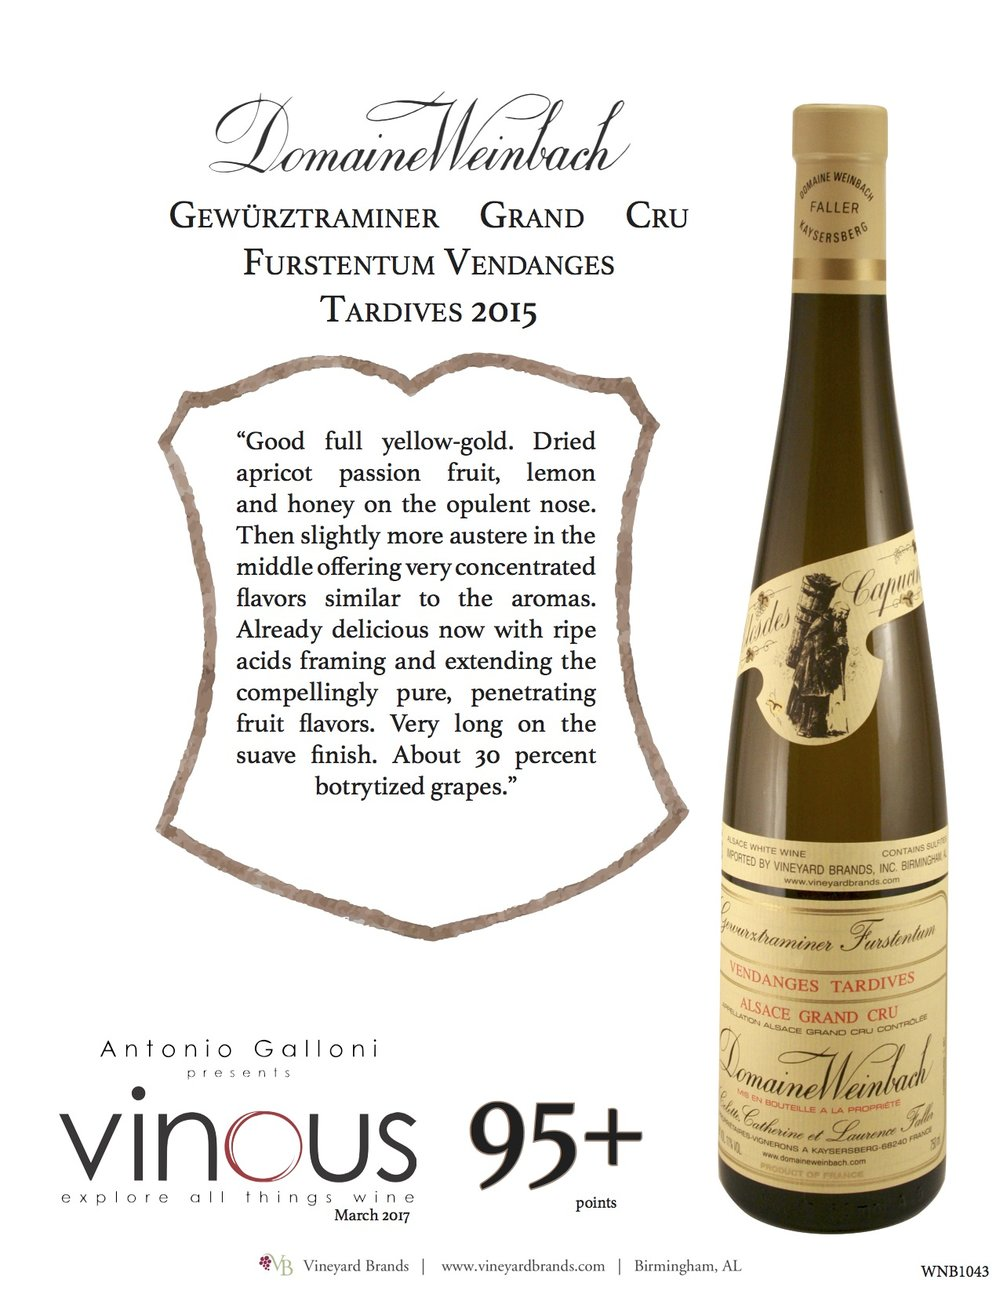 Weinbach Gewurztraminer Furstentum Vendanges Tardives Grand Cru.jpg